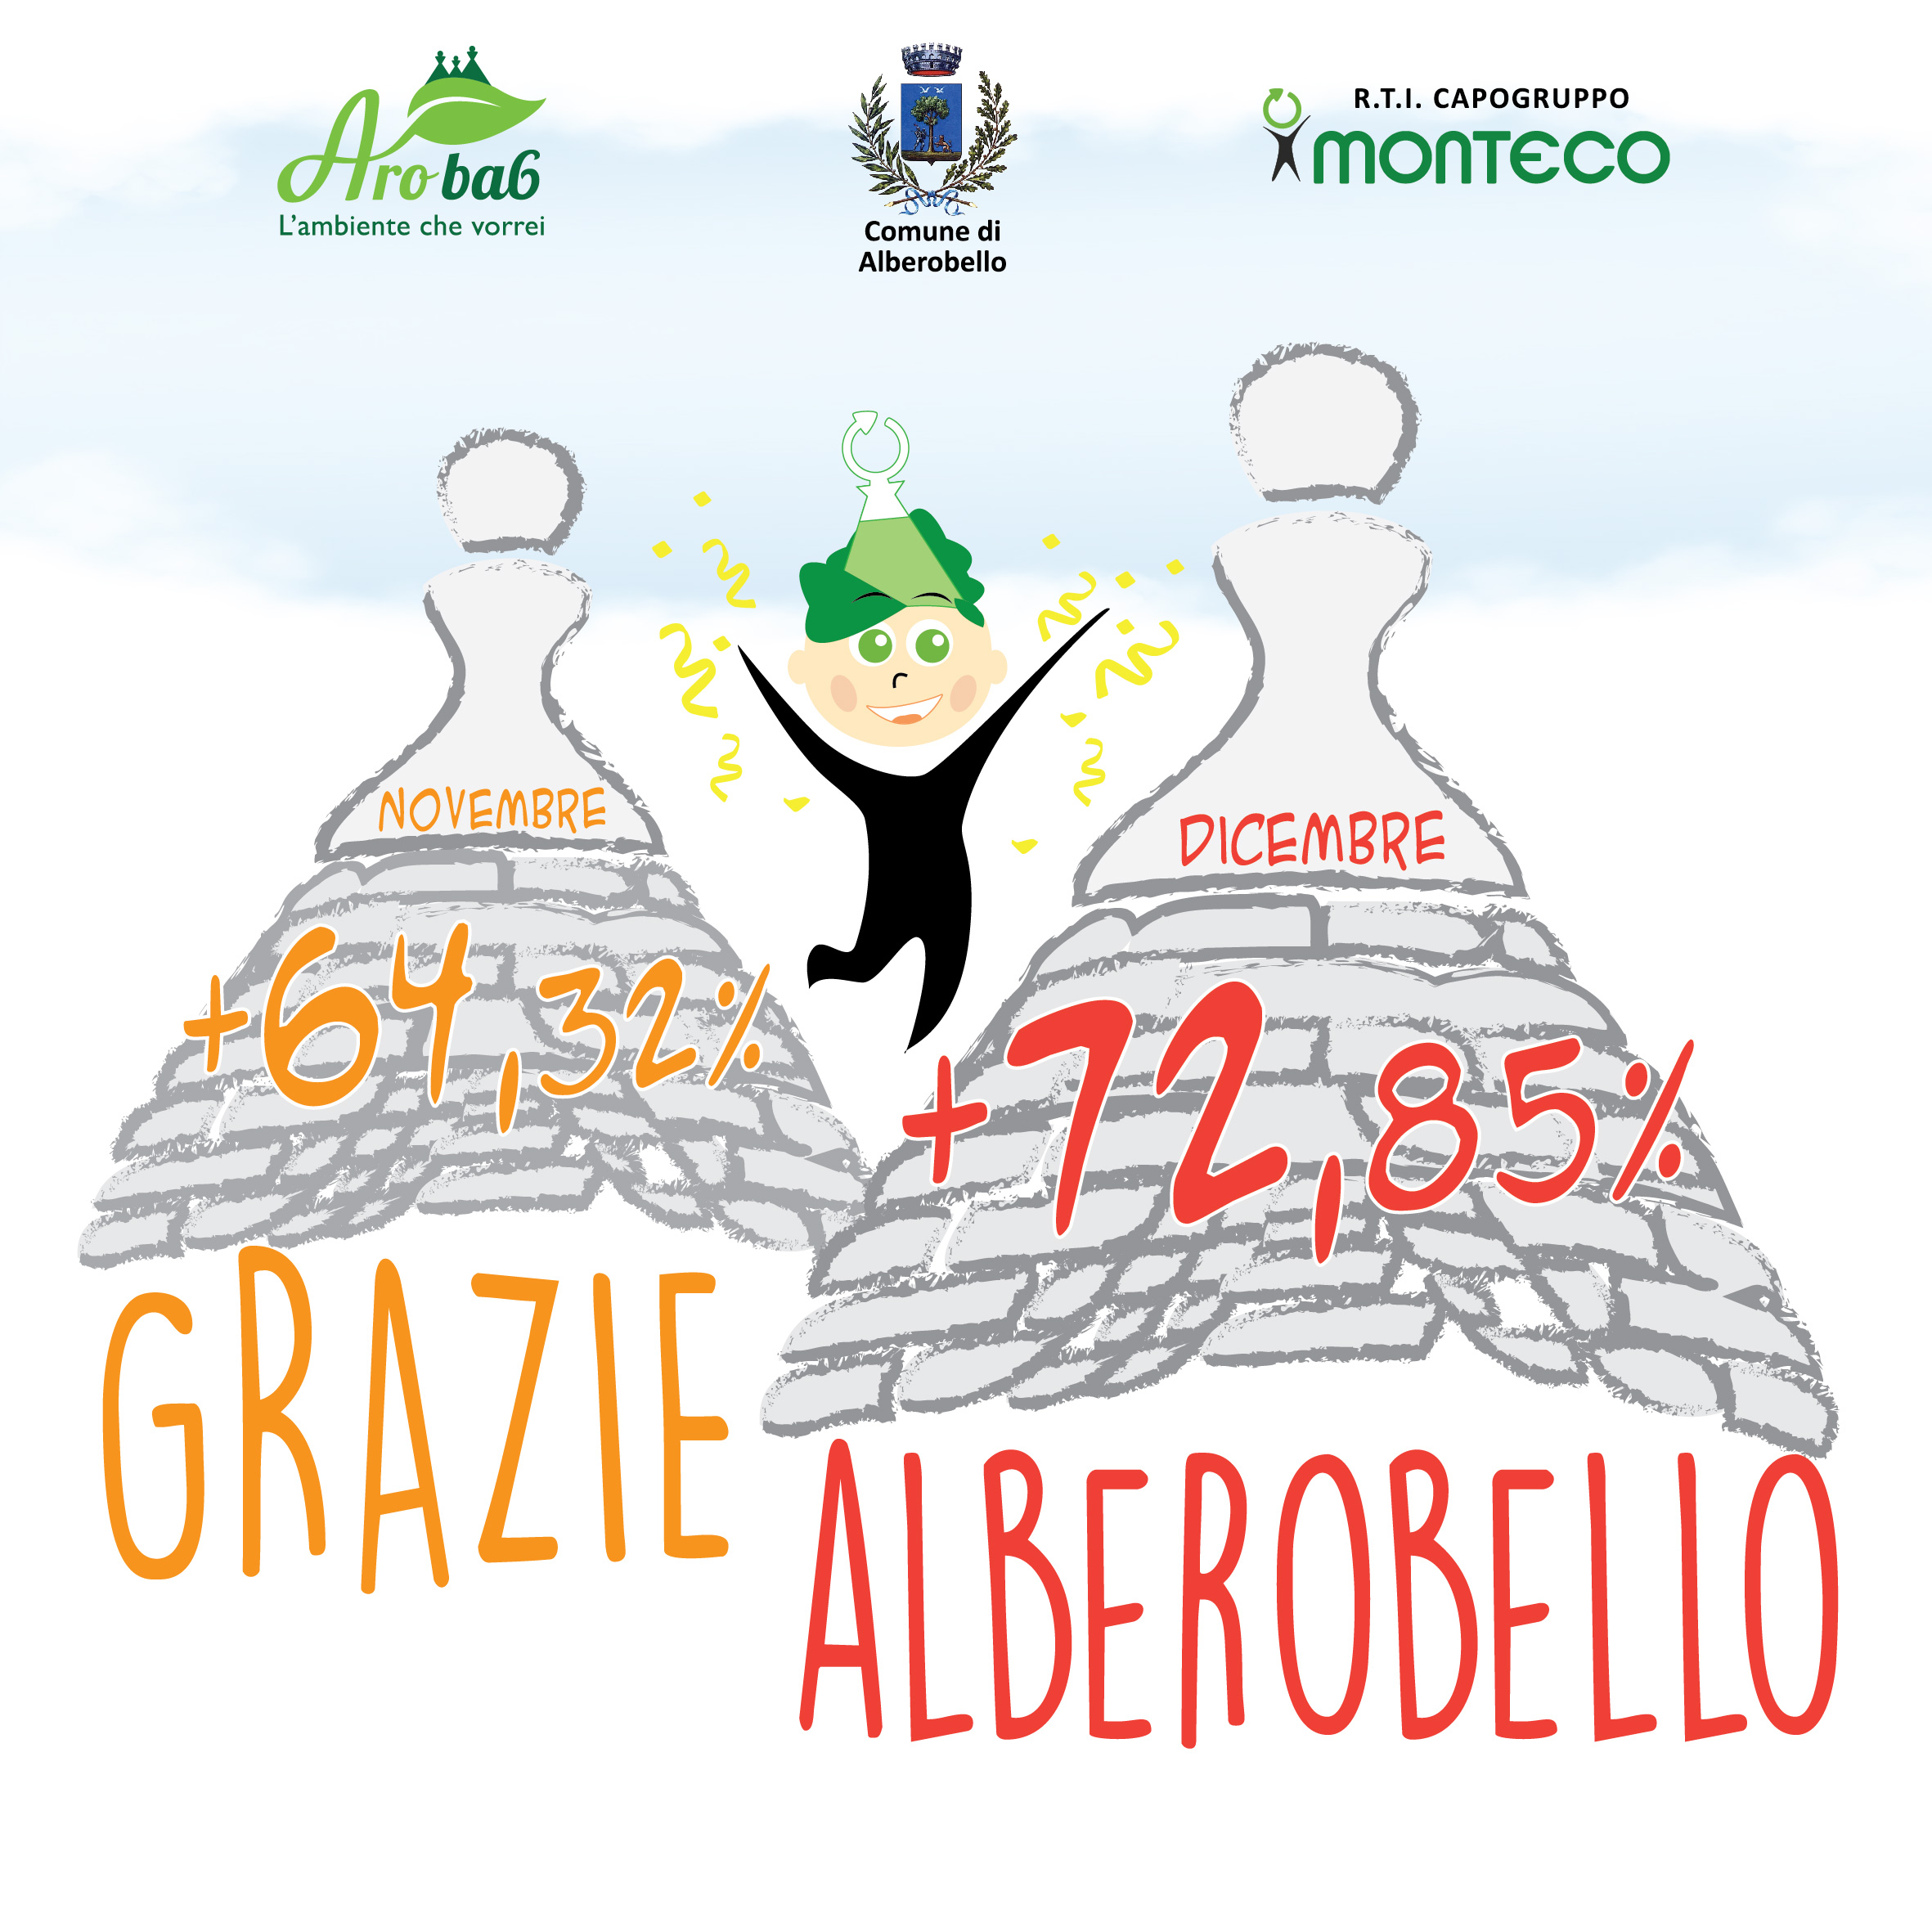 ALBEROBELLO SUPERA IL 70% DI RACCOLTA DIFFERENZIATA